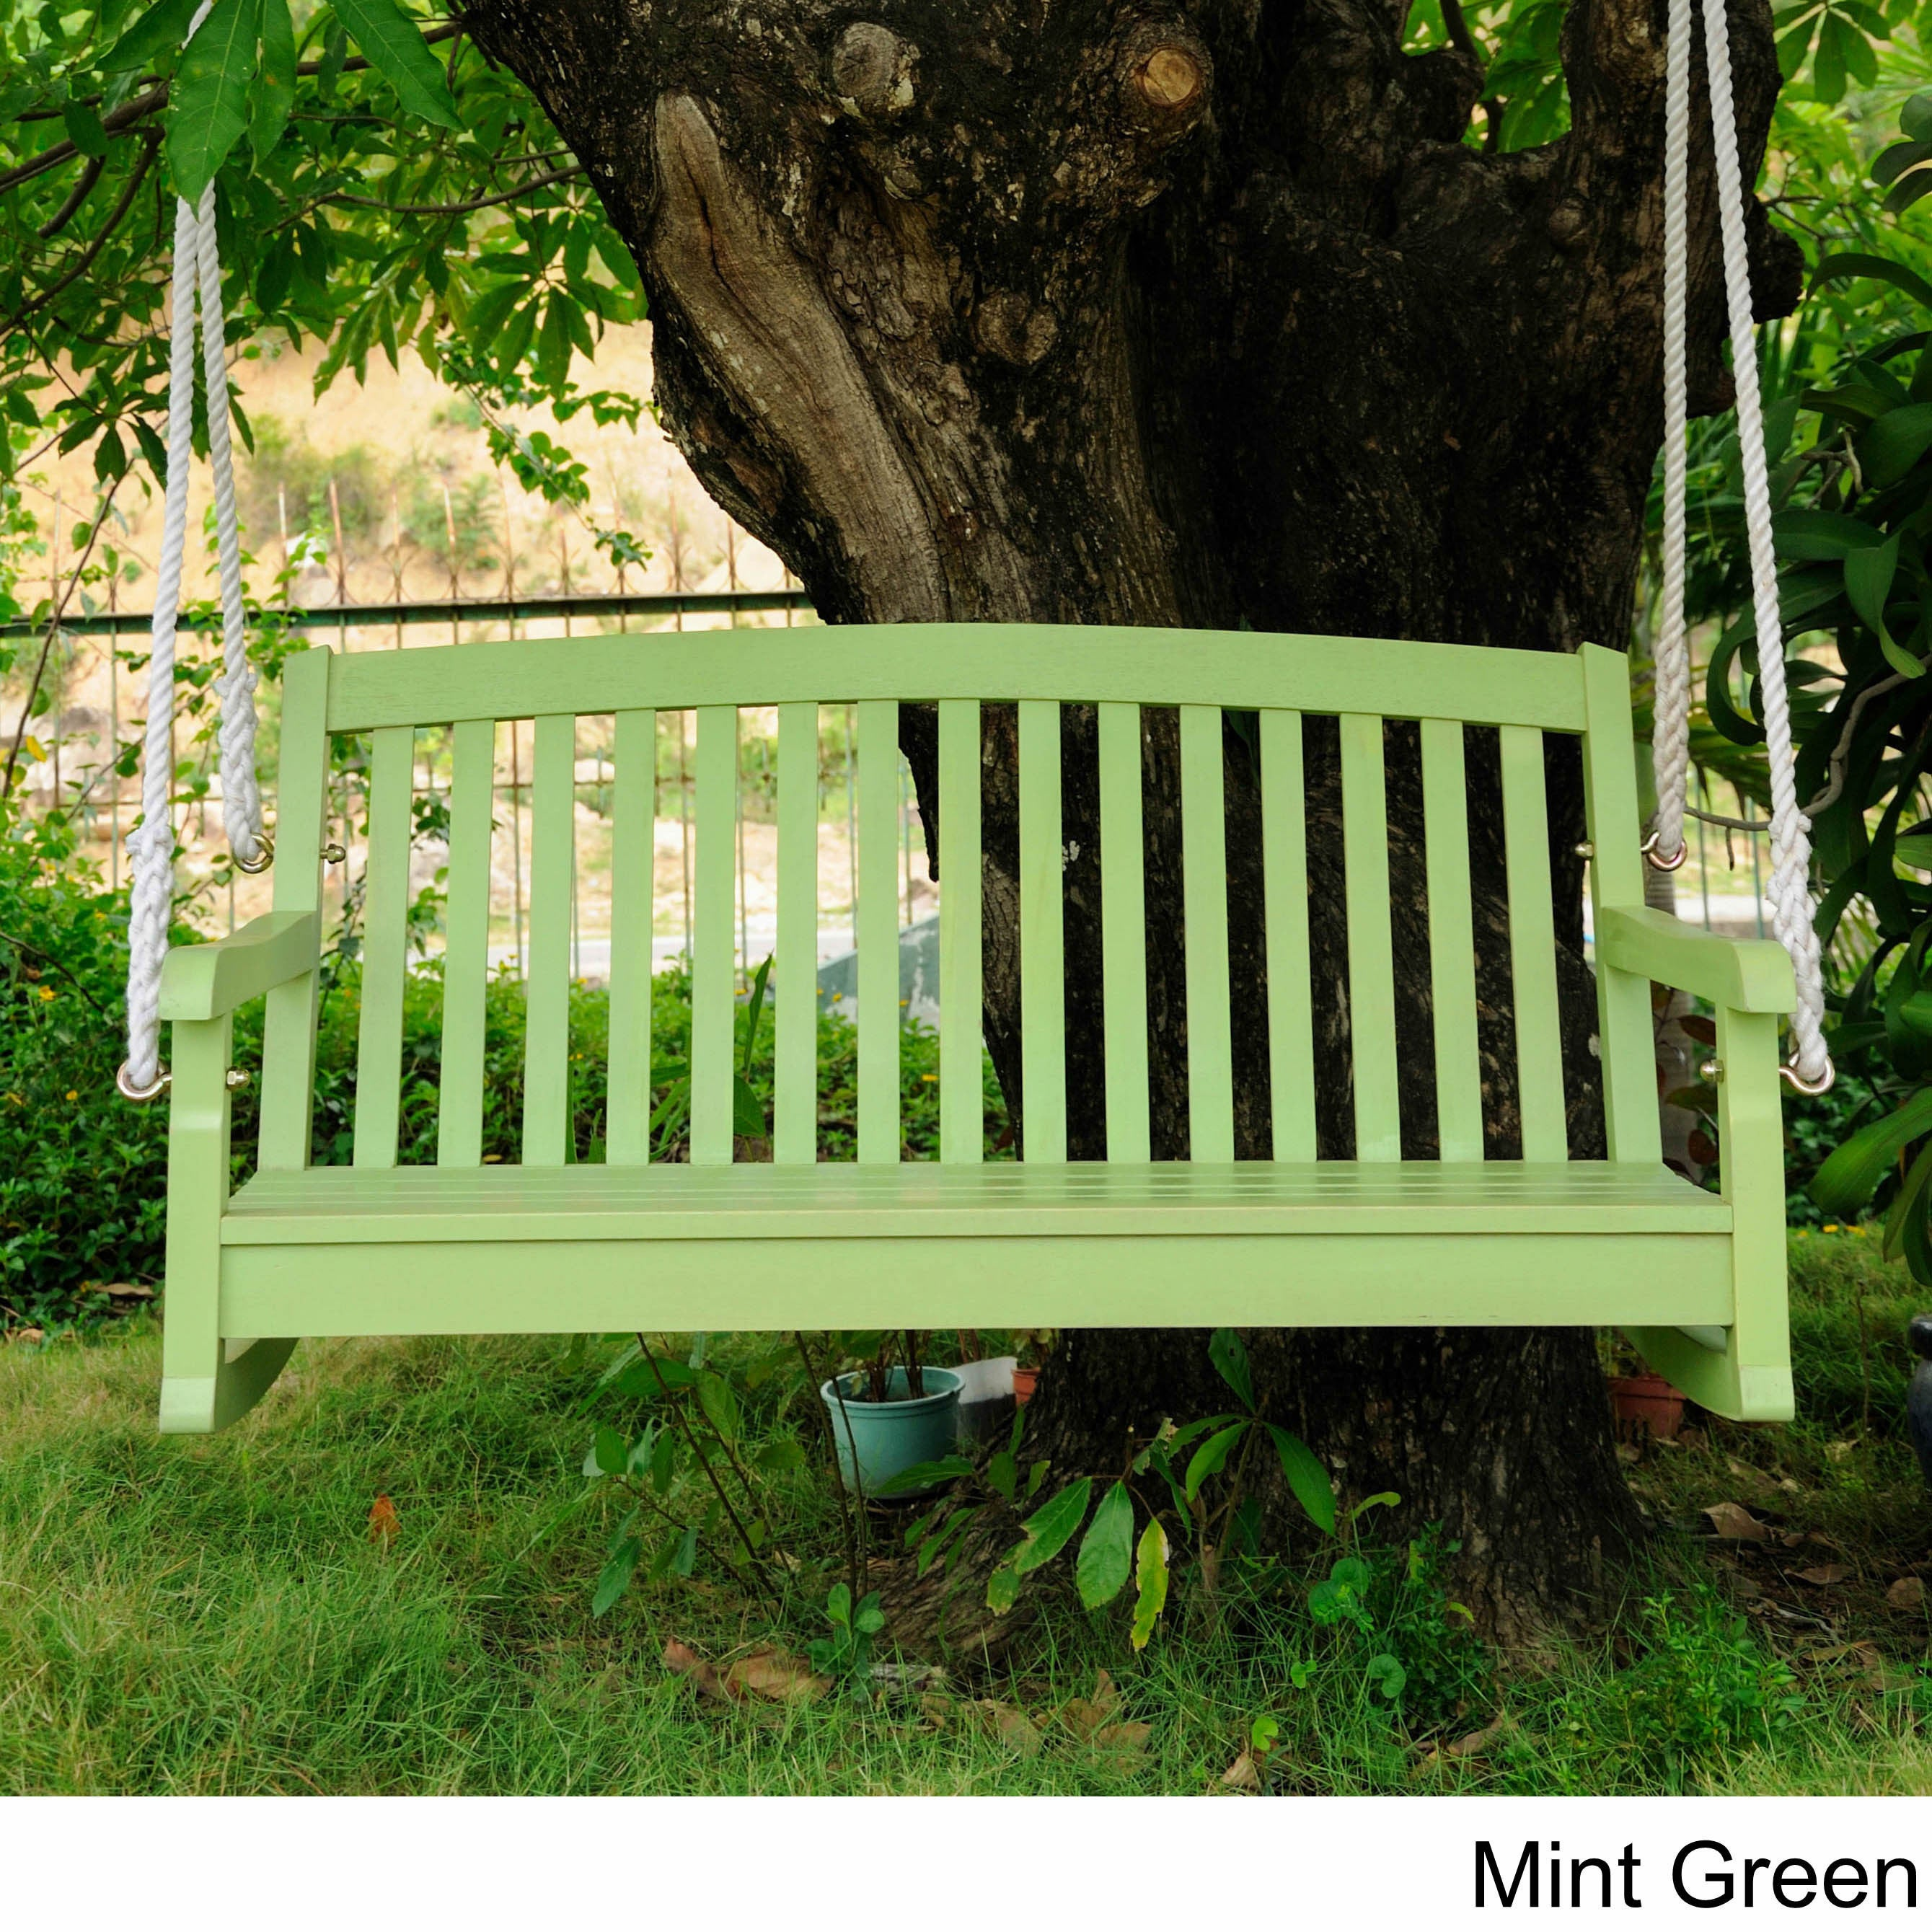 patio love chair furniture wood inspirational hanging best ideas awesome bench porch swing outdoor hd design swings of